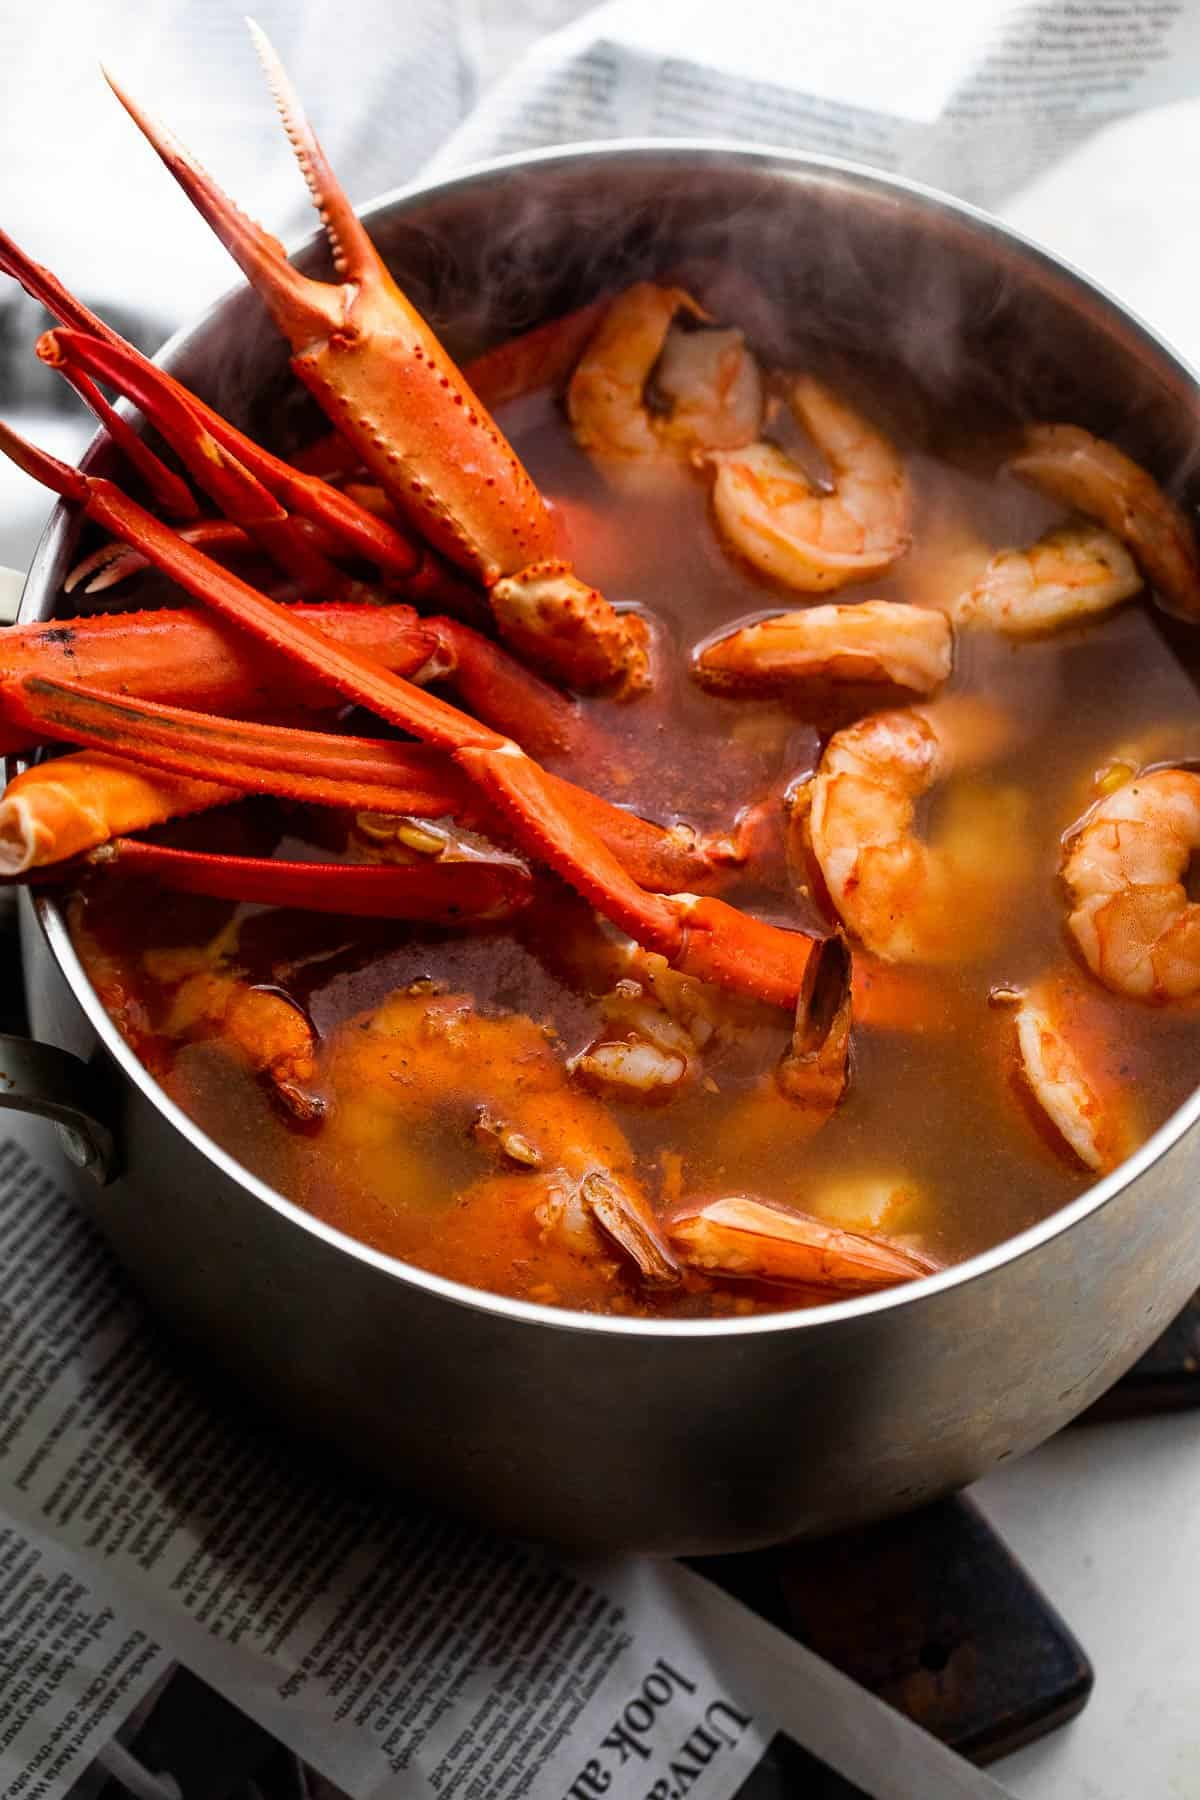 boiling crab legs and shrimp in a stockpot